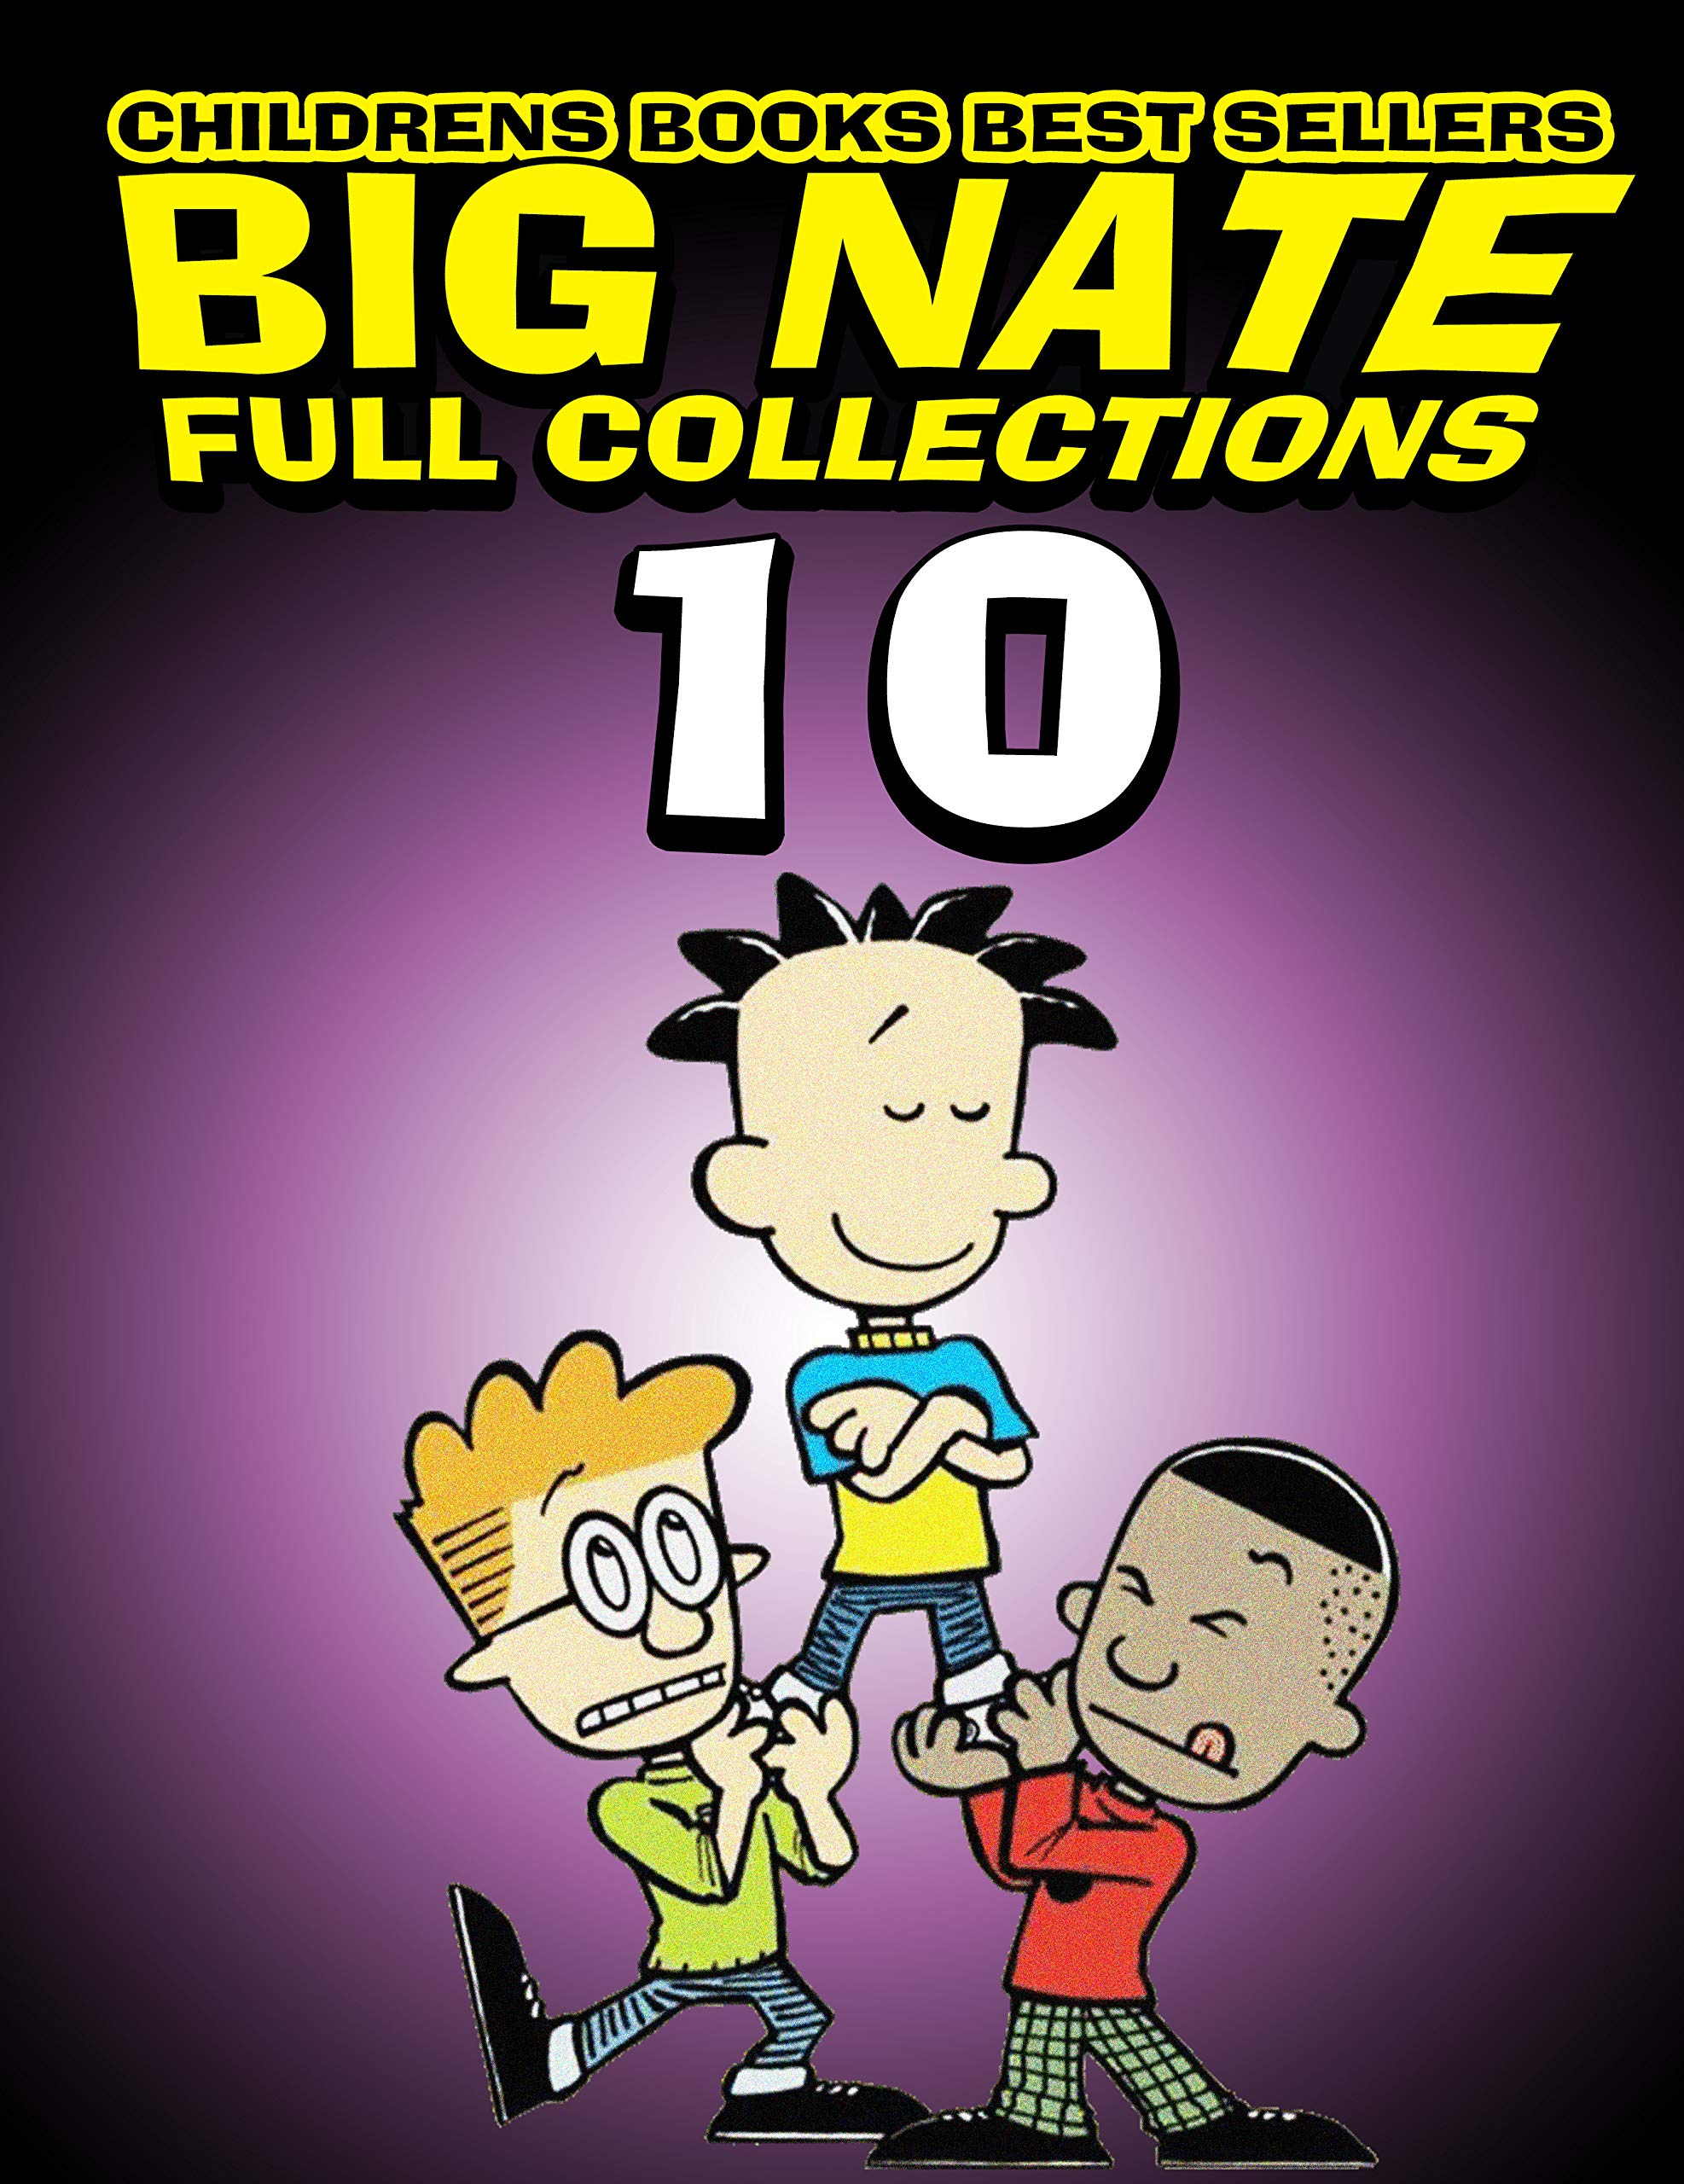 Childrens books best sellers Big Nate Full Collections: Completed Series Big Nate Volume 10